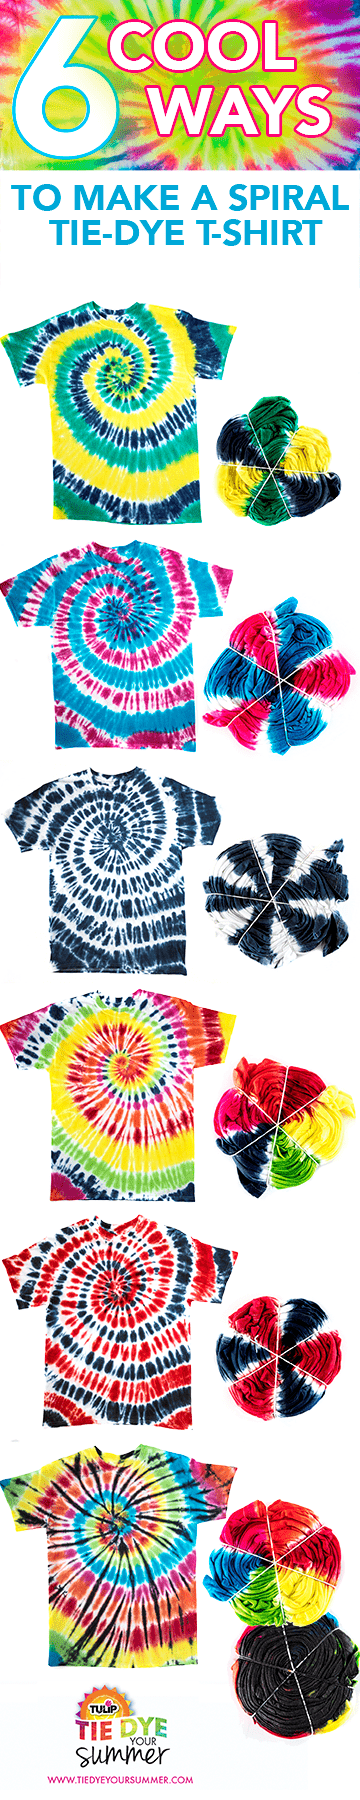 Spiral Tie-Dye Technique Choose your favorite color combos for easy spiral tie dye! #howtospiraltiedye #spiraltiedye #tiedyespiral #DIYtiedye #tuliptiedye #tiedyeyoursummer #TDYS